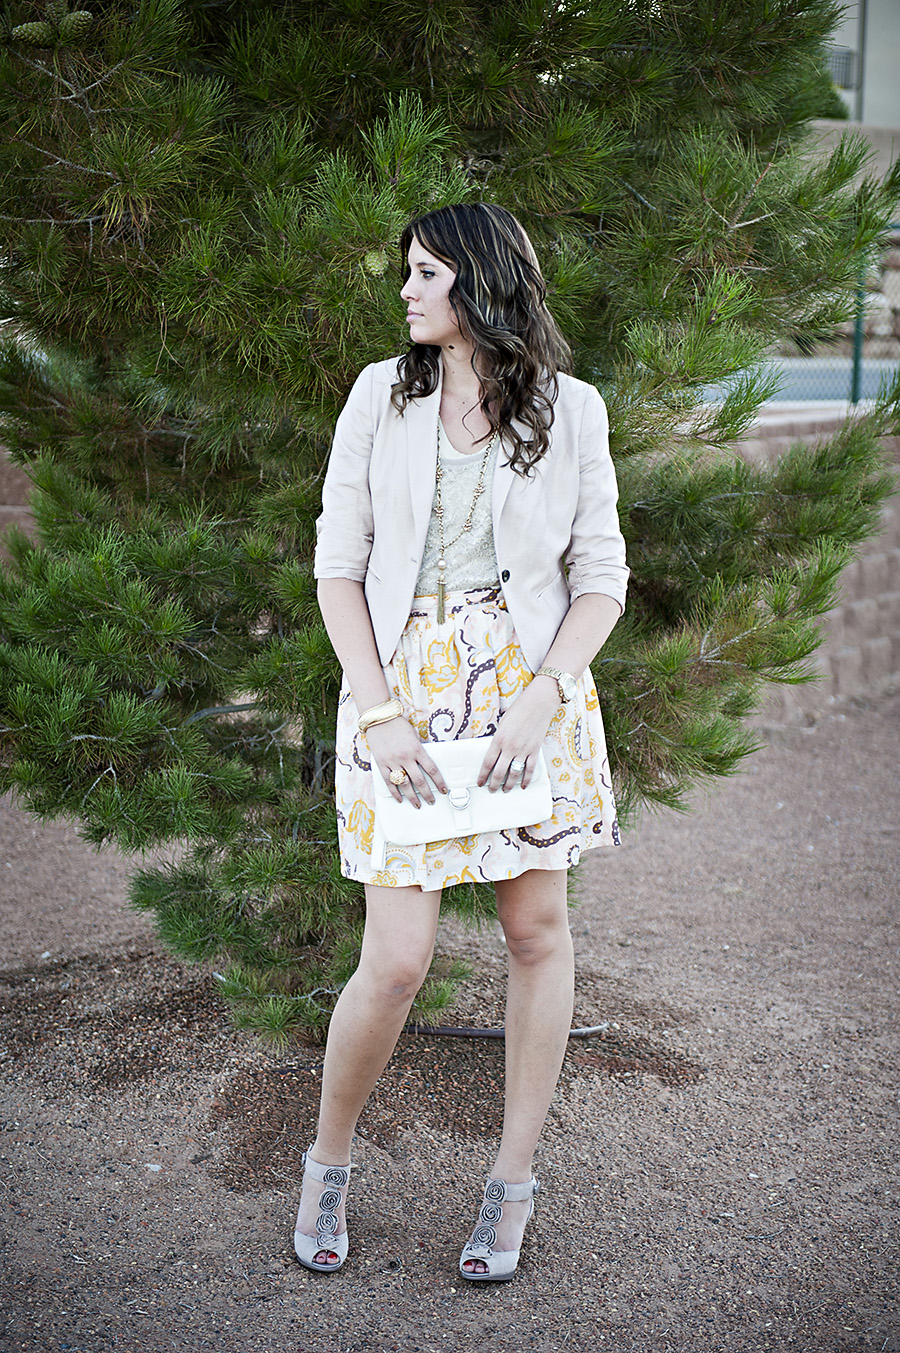 Utah Fashion Blogger, Modest Fashion Blogger, Thrifted